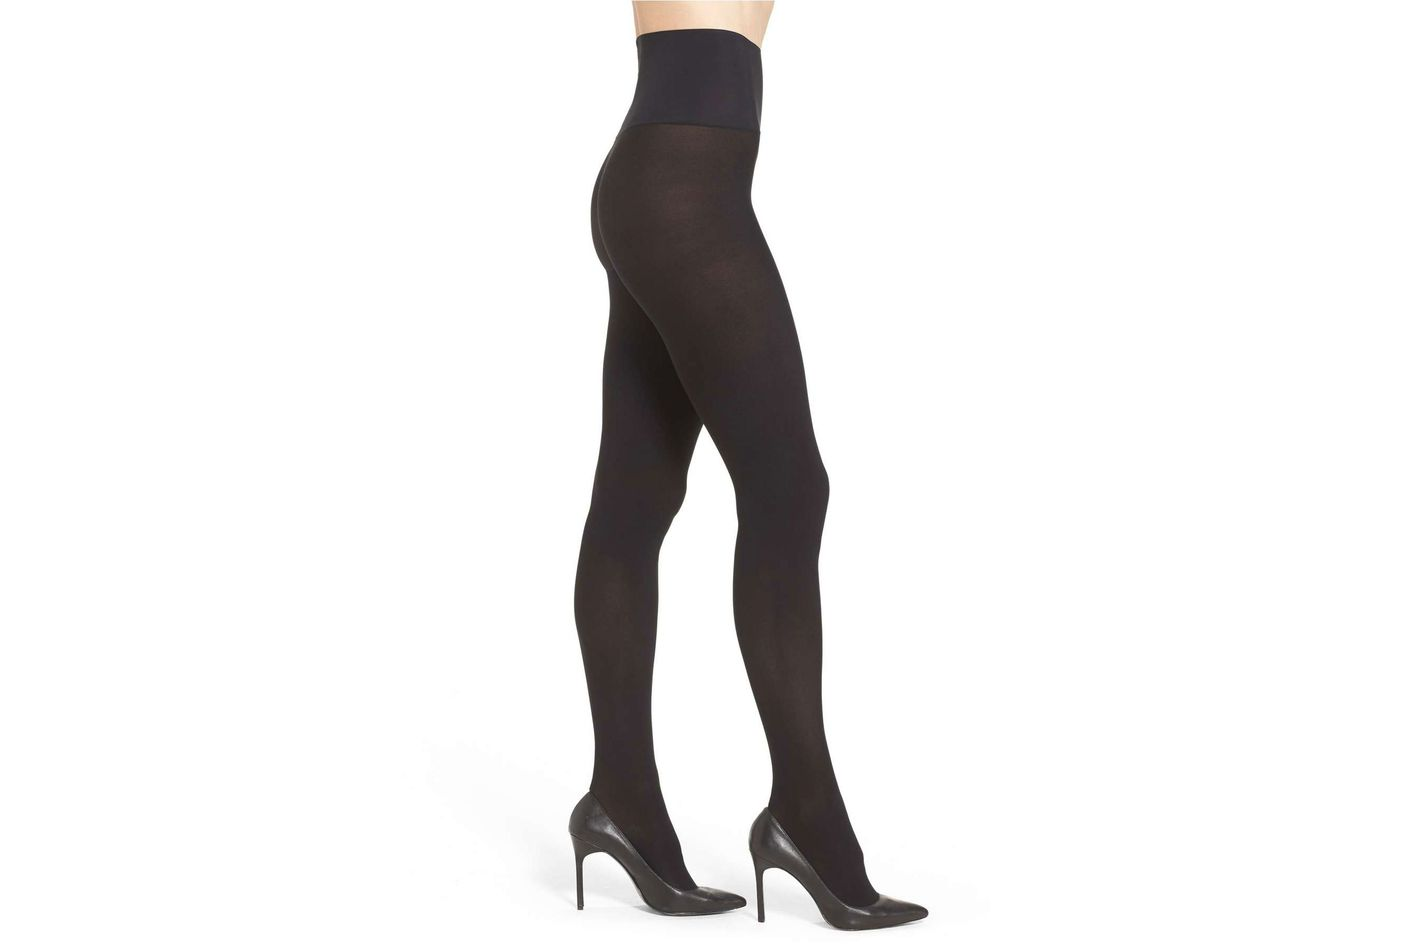 8f7f9cc60a7 8 Best Black Tights Women 2017  Opaque